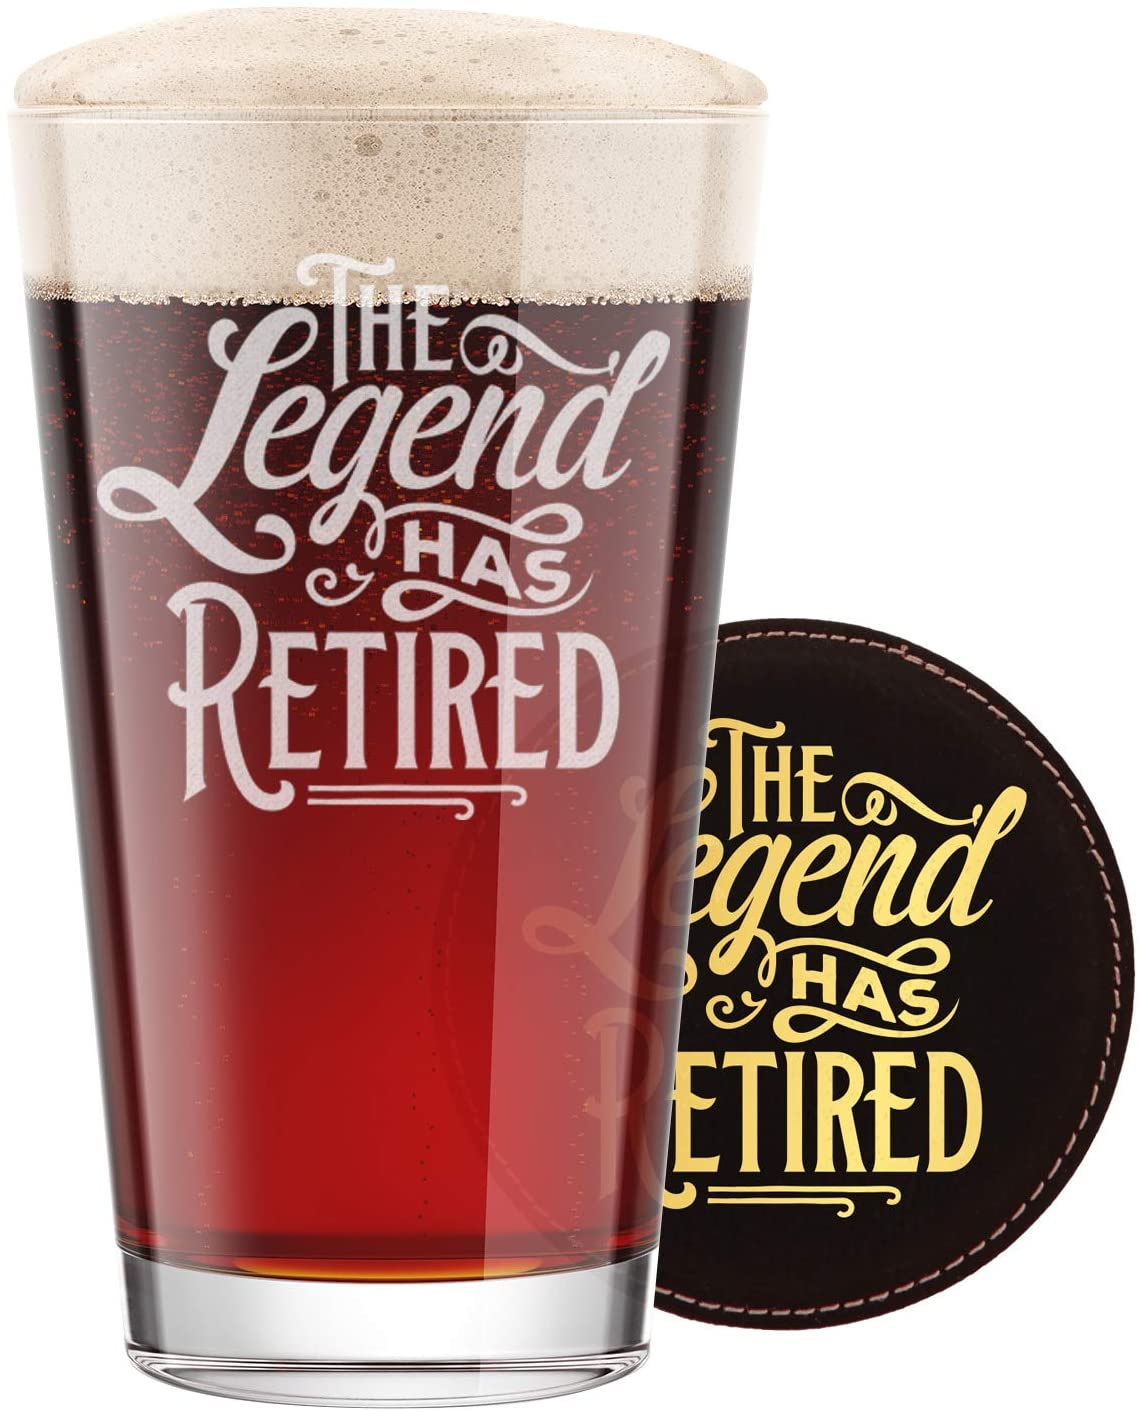 32 Essential Retirement Gifts Ideas For Men To Start Their New Journey In 2020 Giftlab